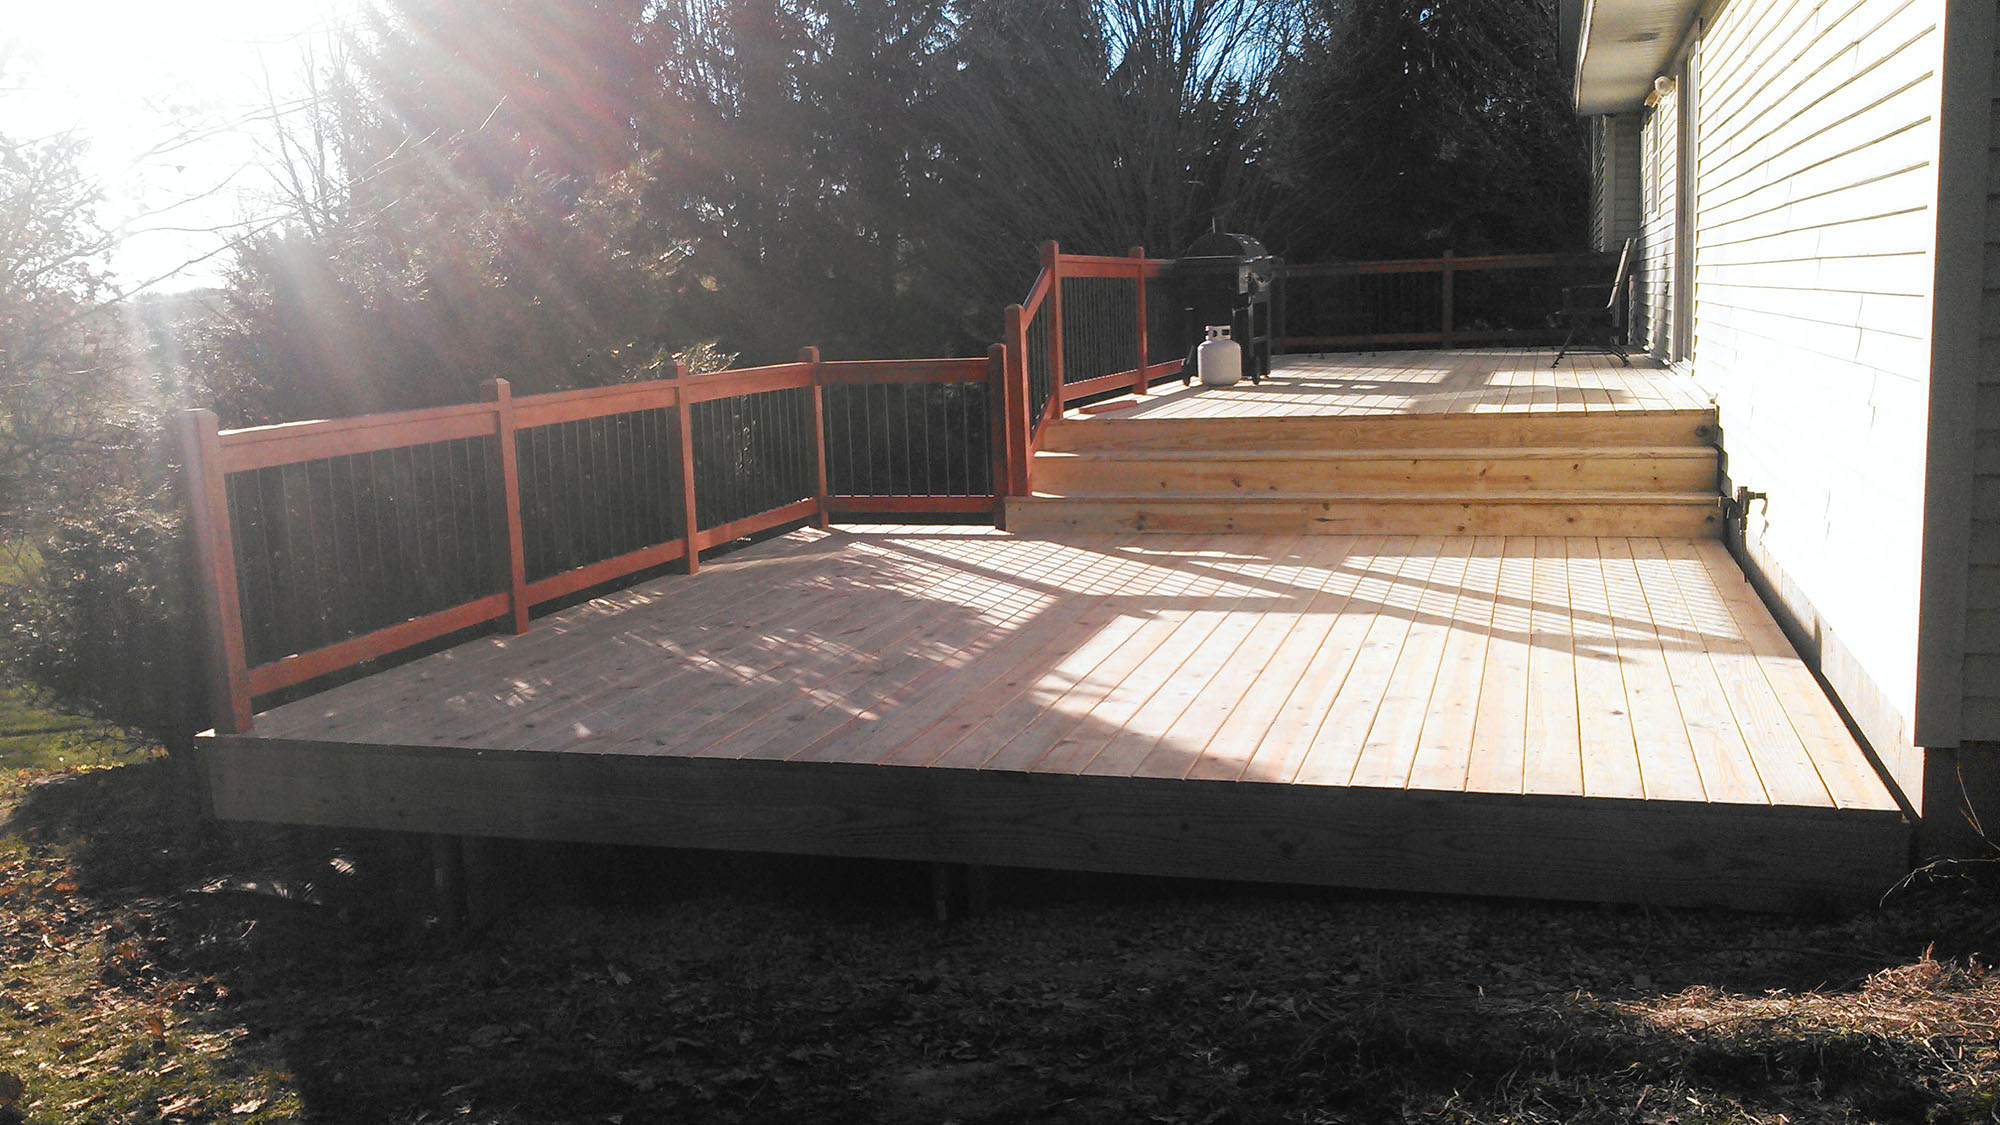 decks they title spa constructed sundance store deck installation id to modern hold can reinforced the and be location hot new easily of weight are part tub older effortlessly your ensure blog